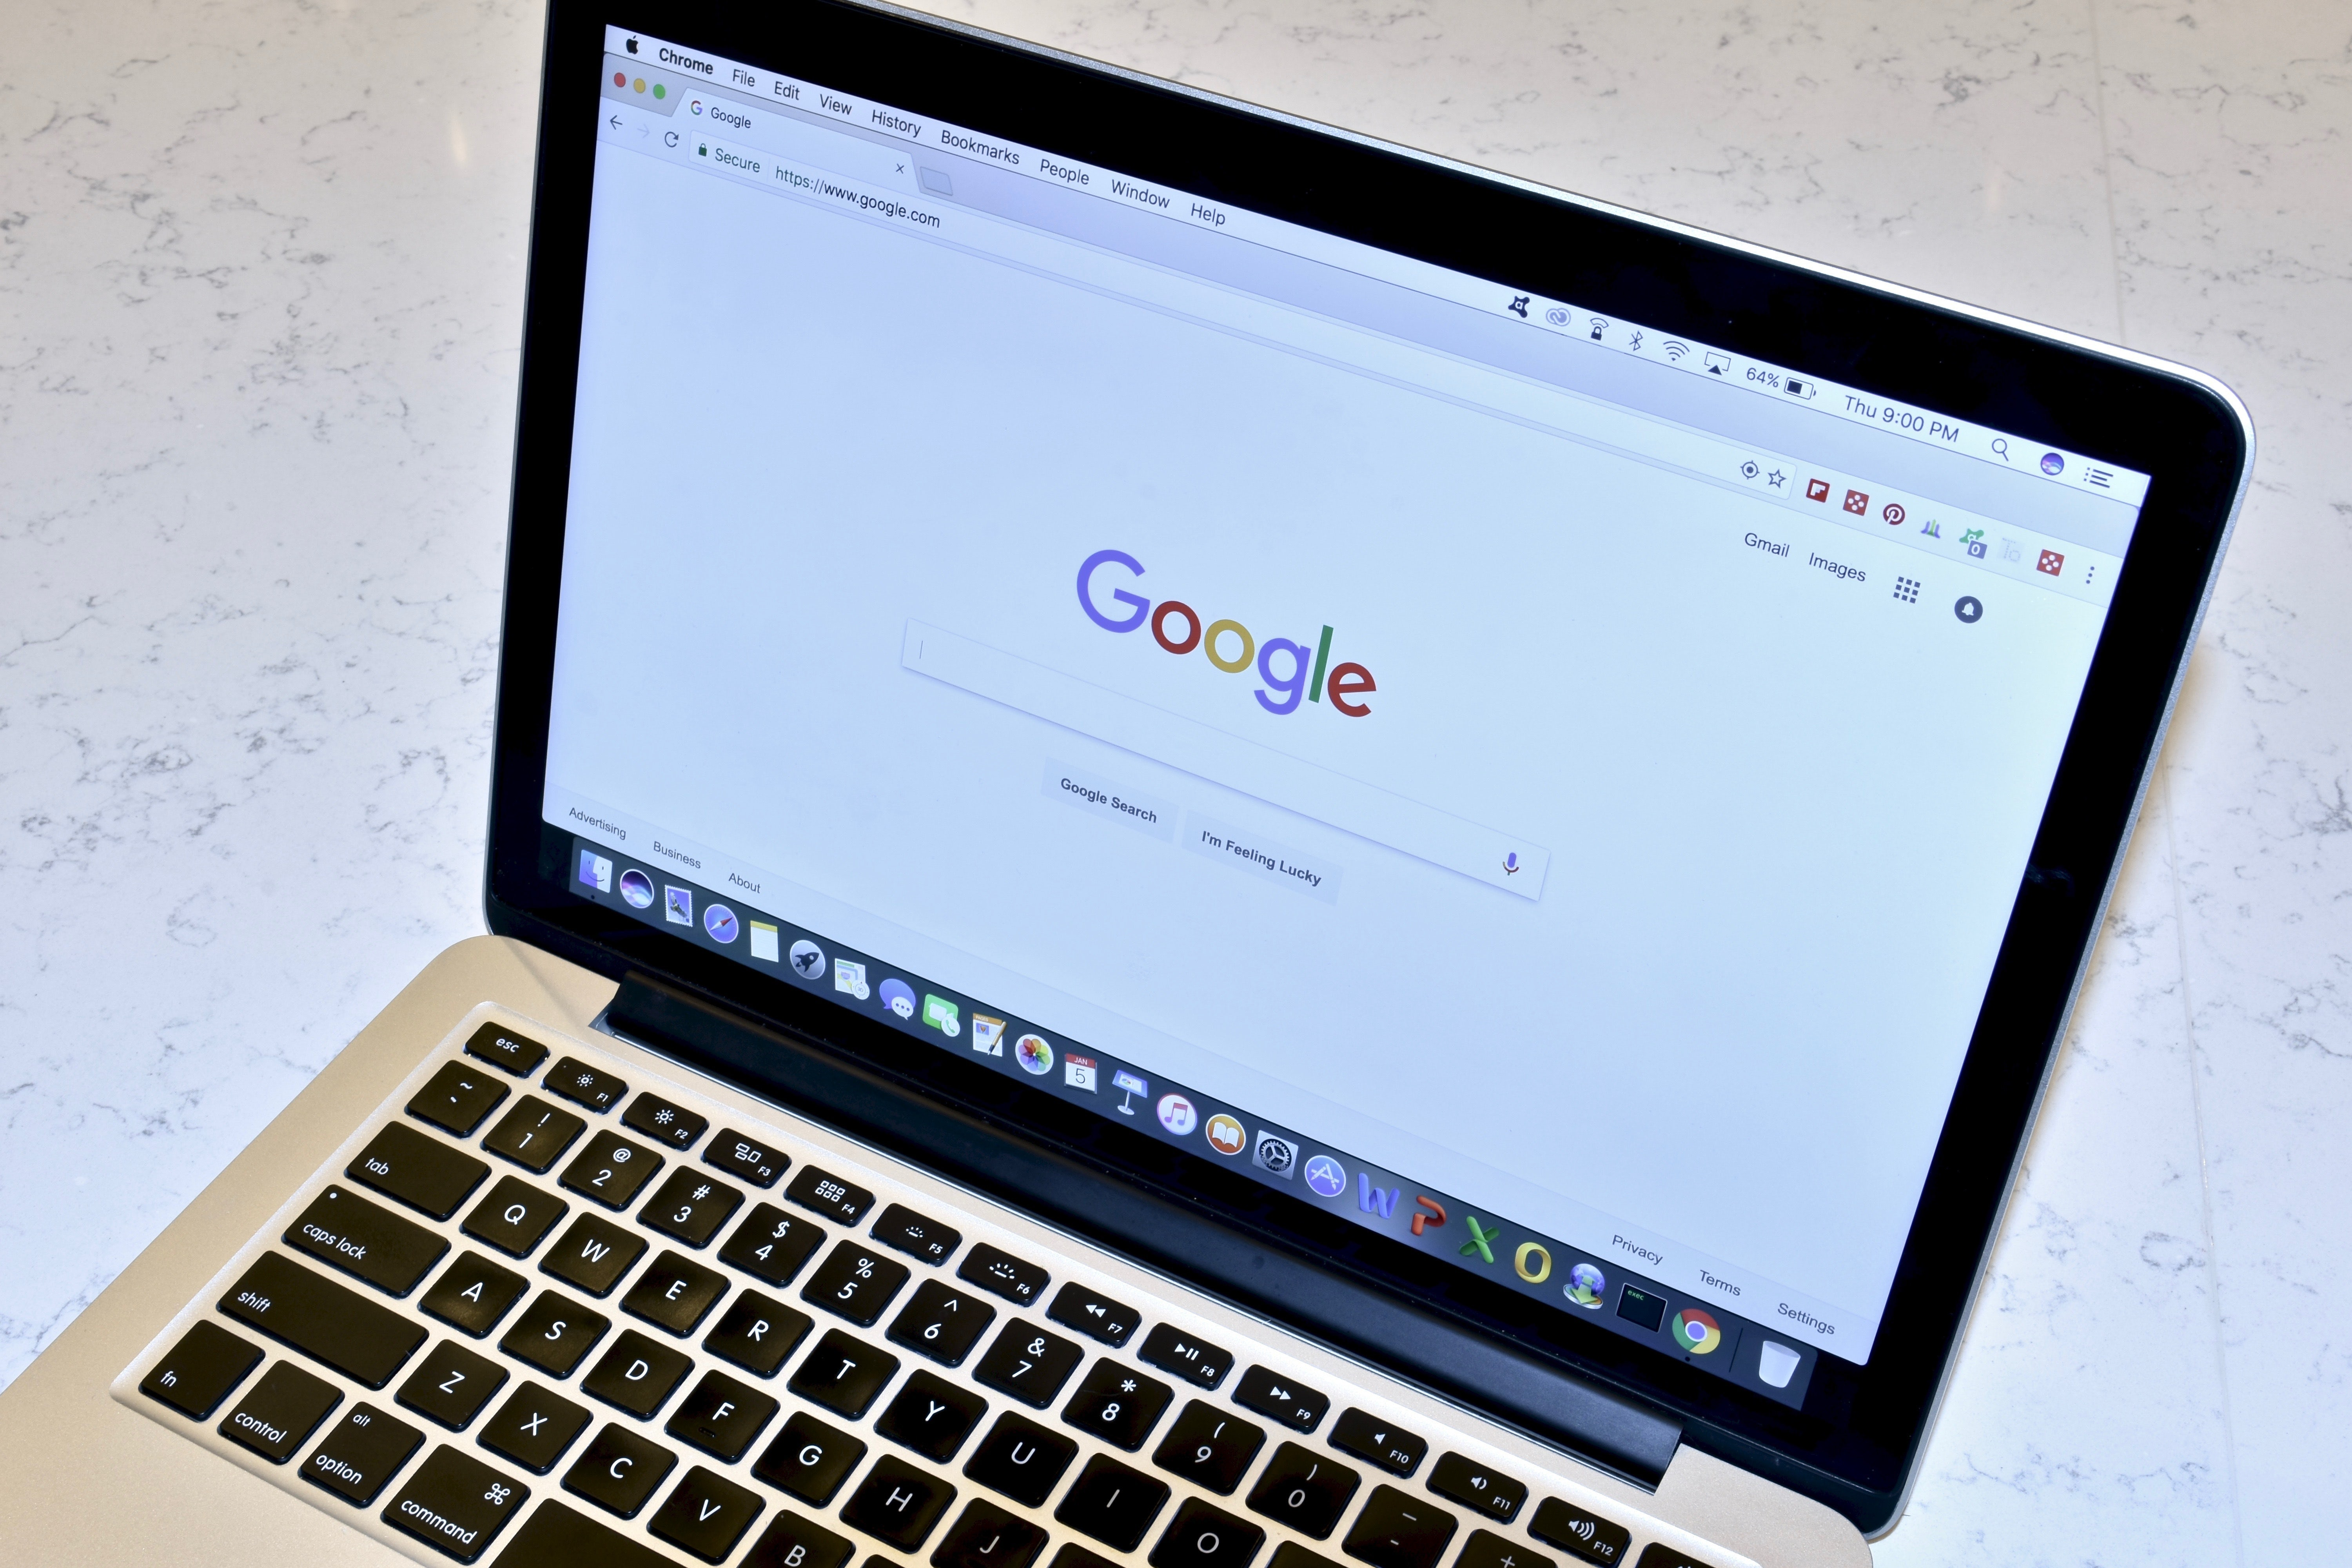 A laptop displays Google's search page | Source: Shutterstock